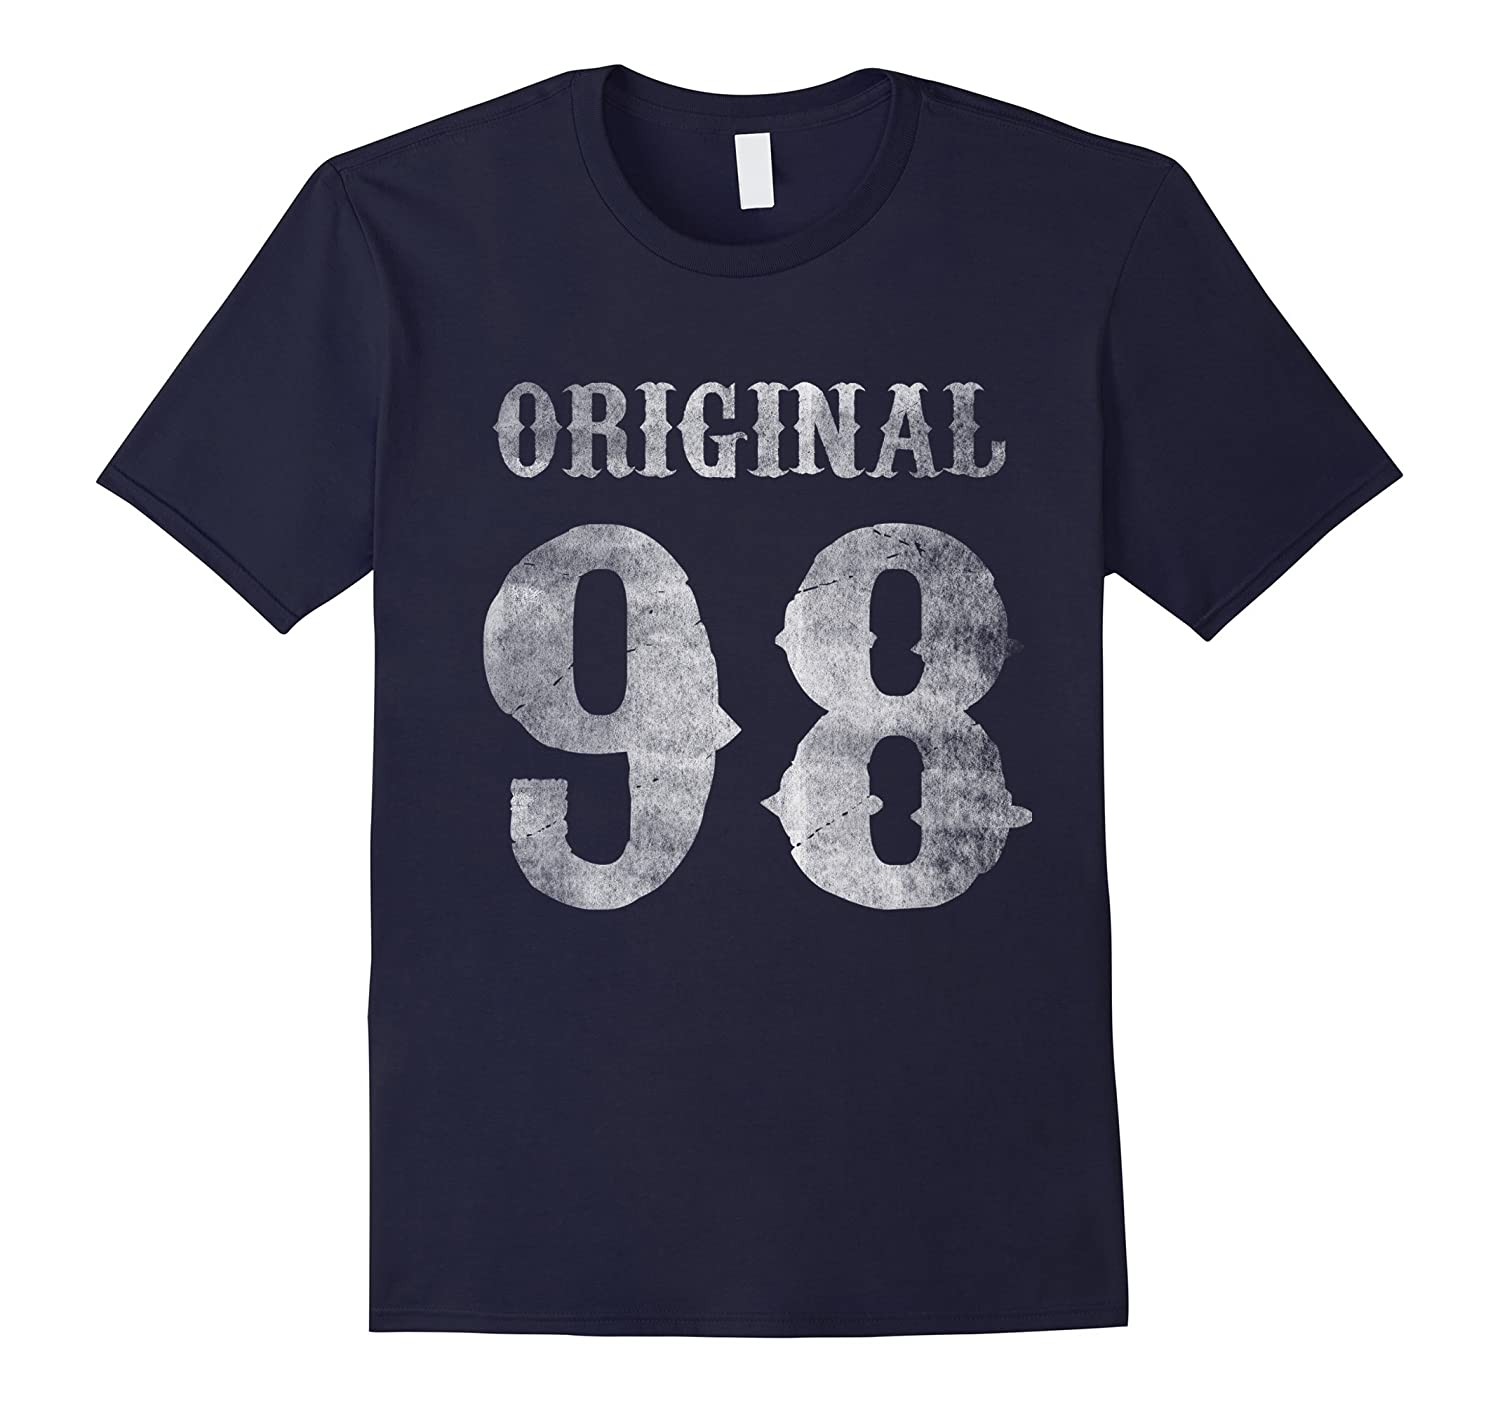 1998 Birthday Vintage T-shirt 98th Birthday Men Women kids-TH